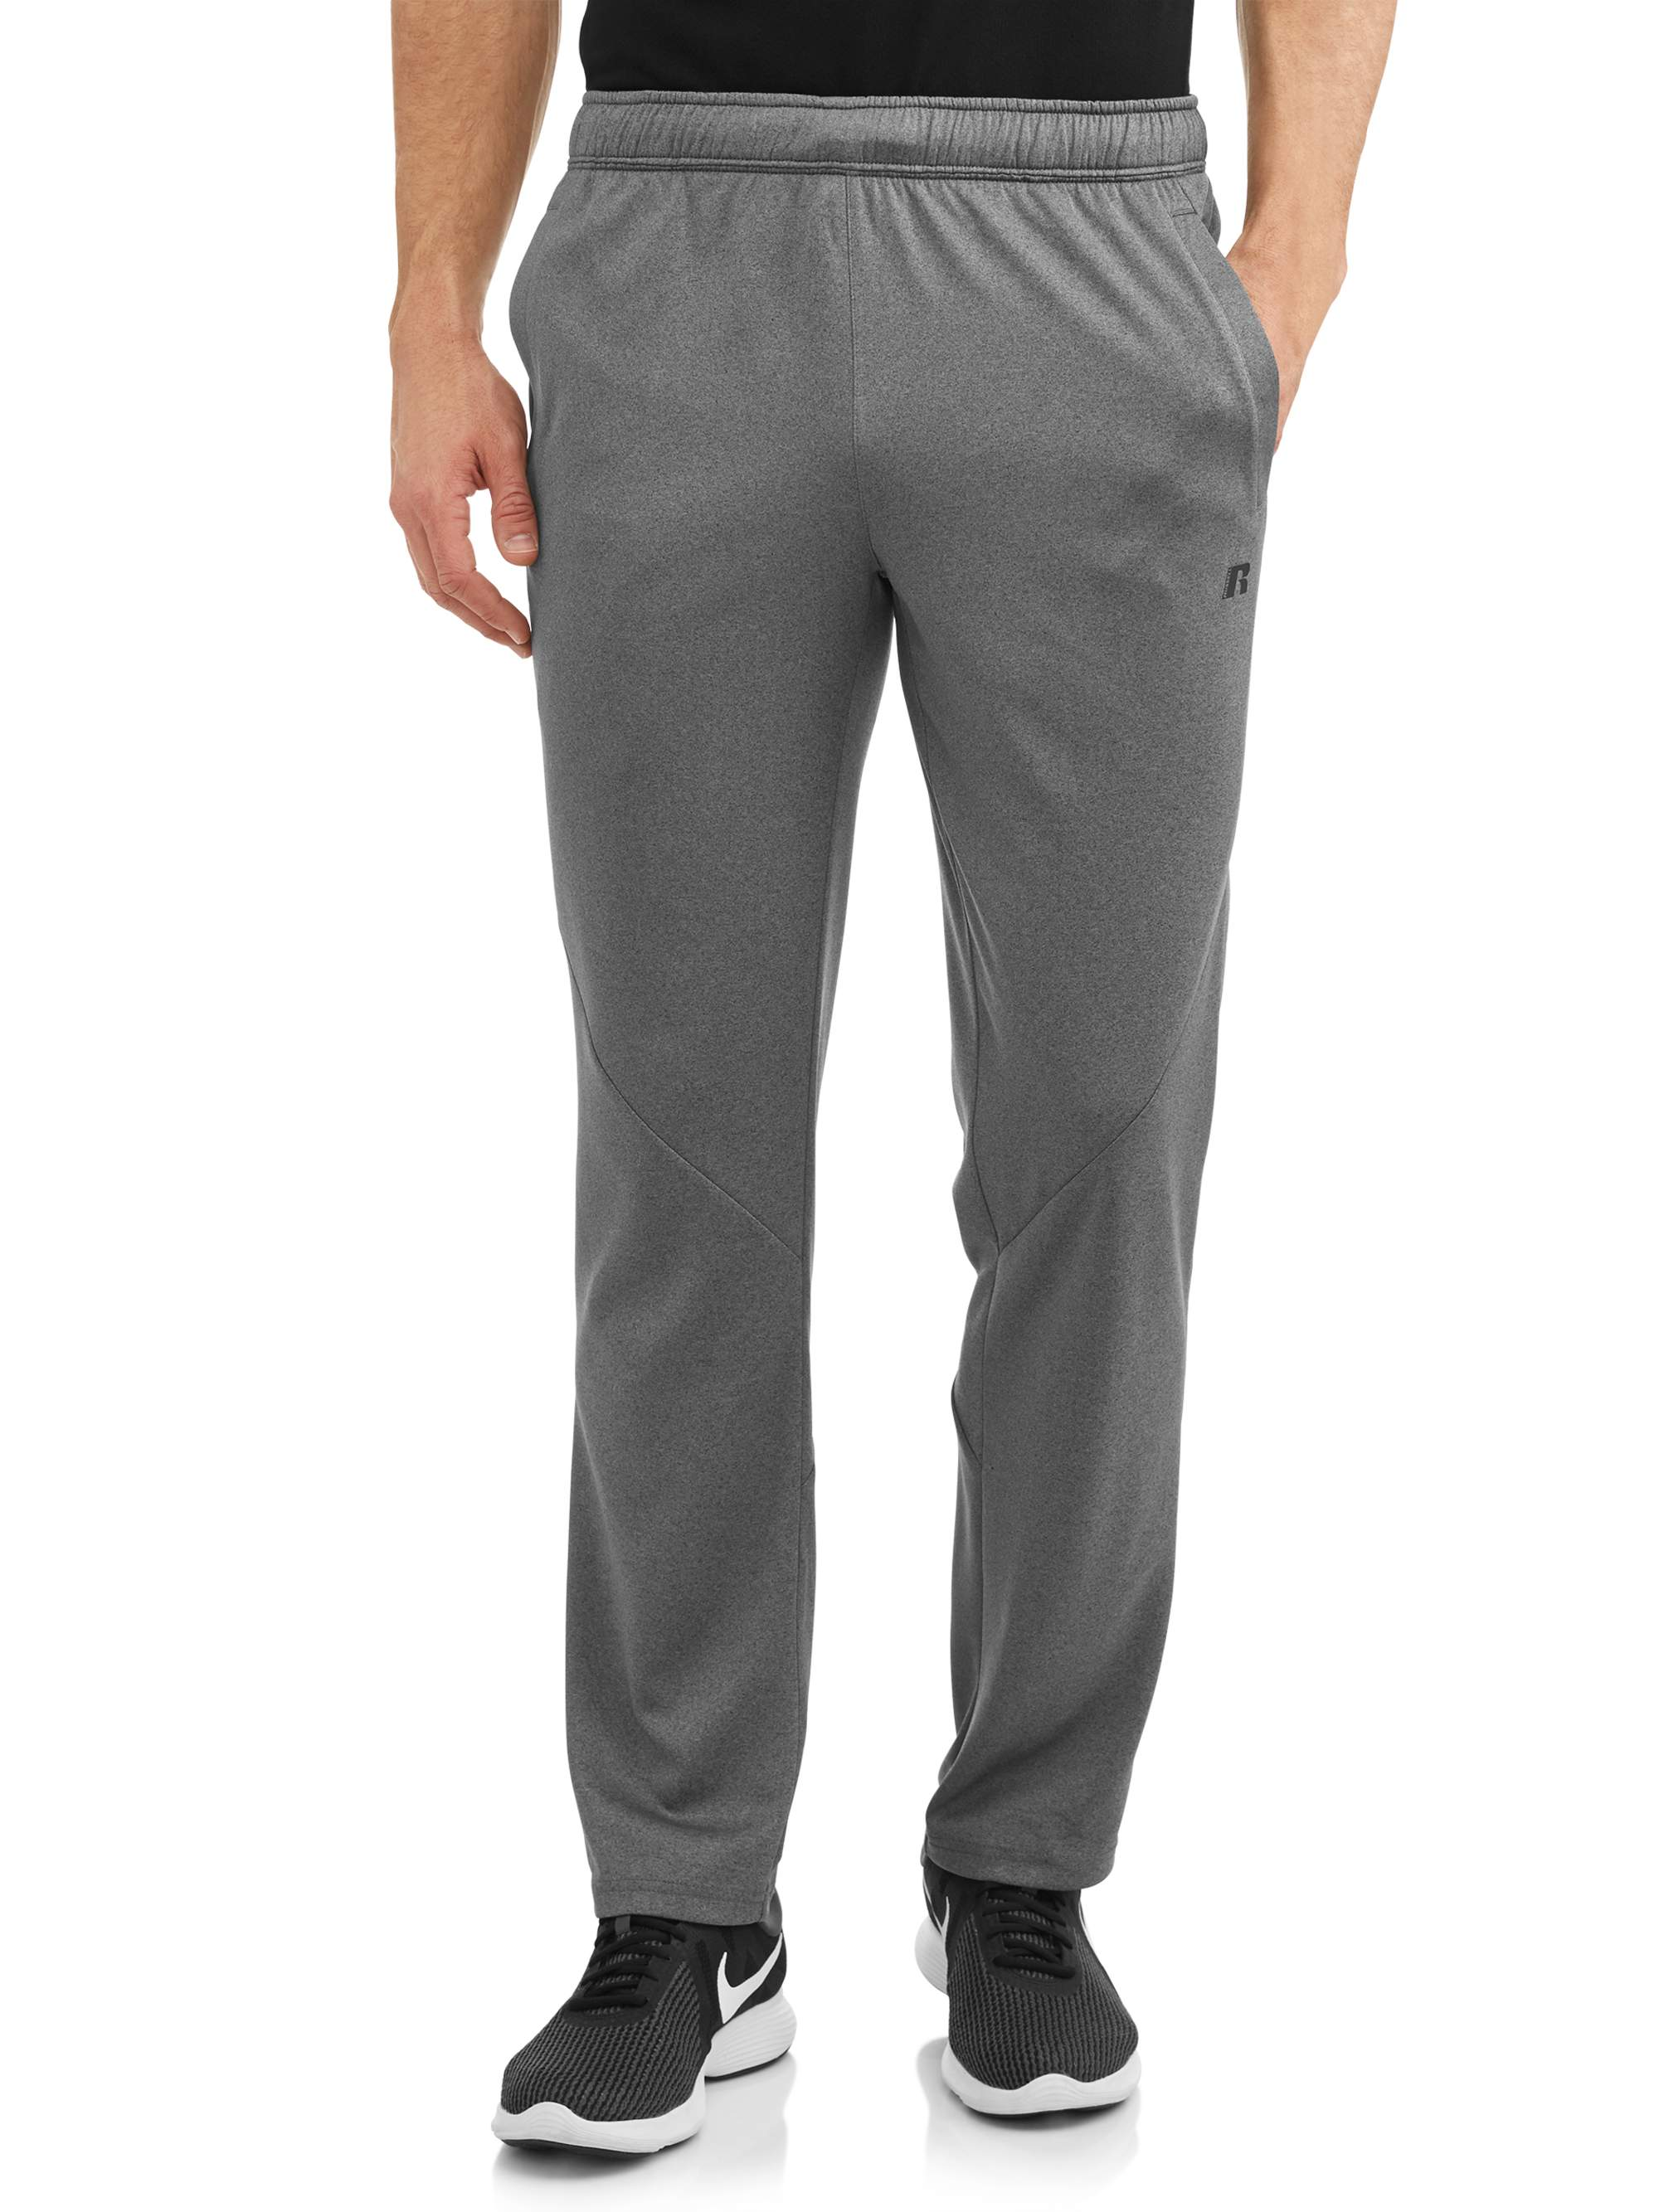 Russell Men's Performance Knit Pant